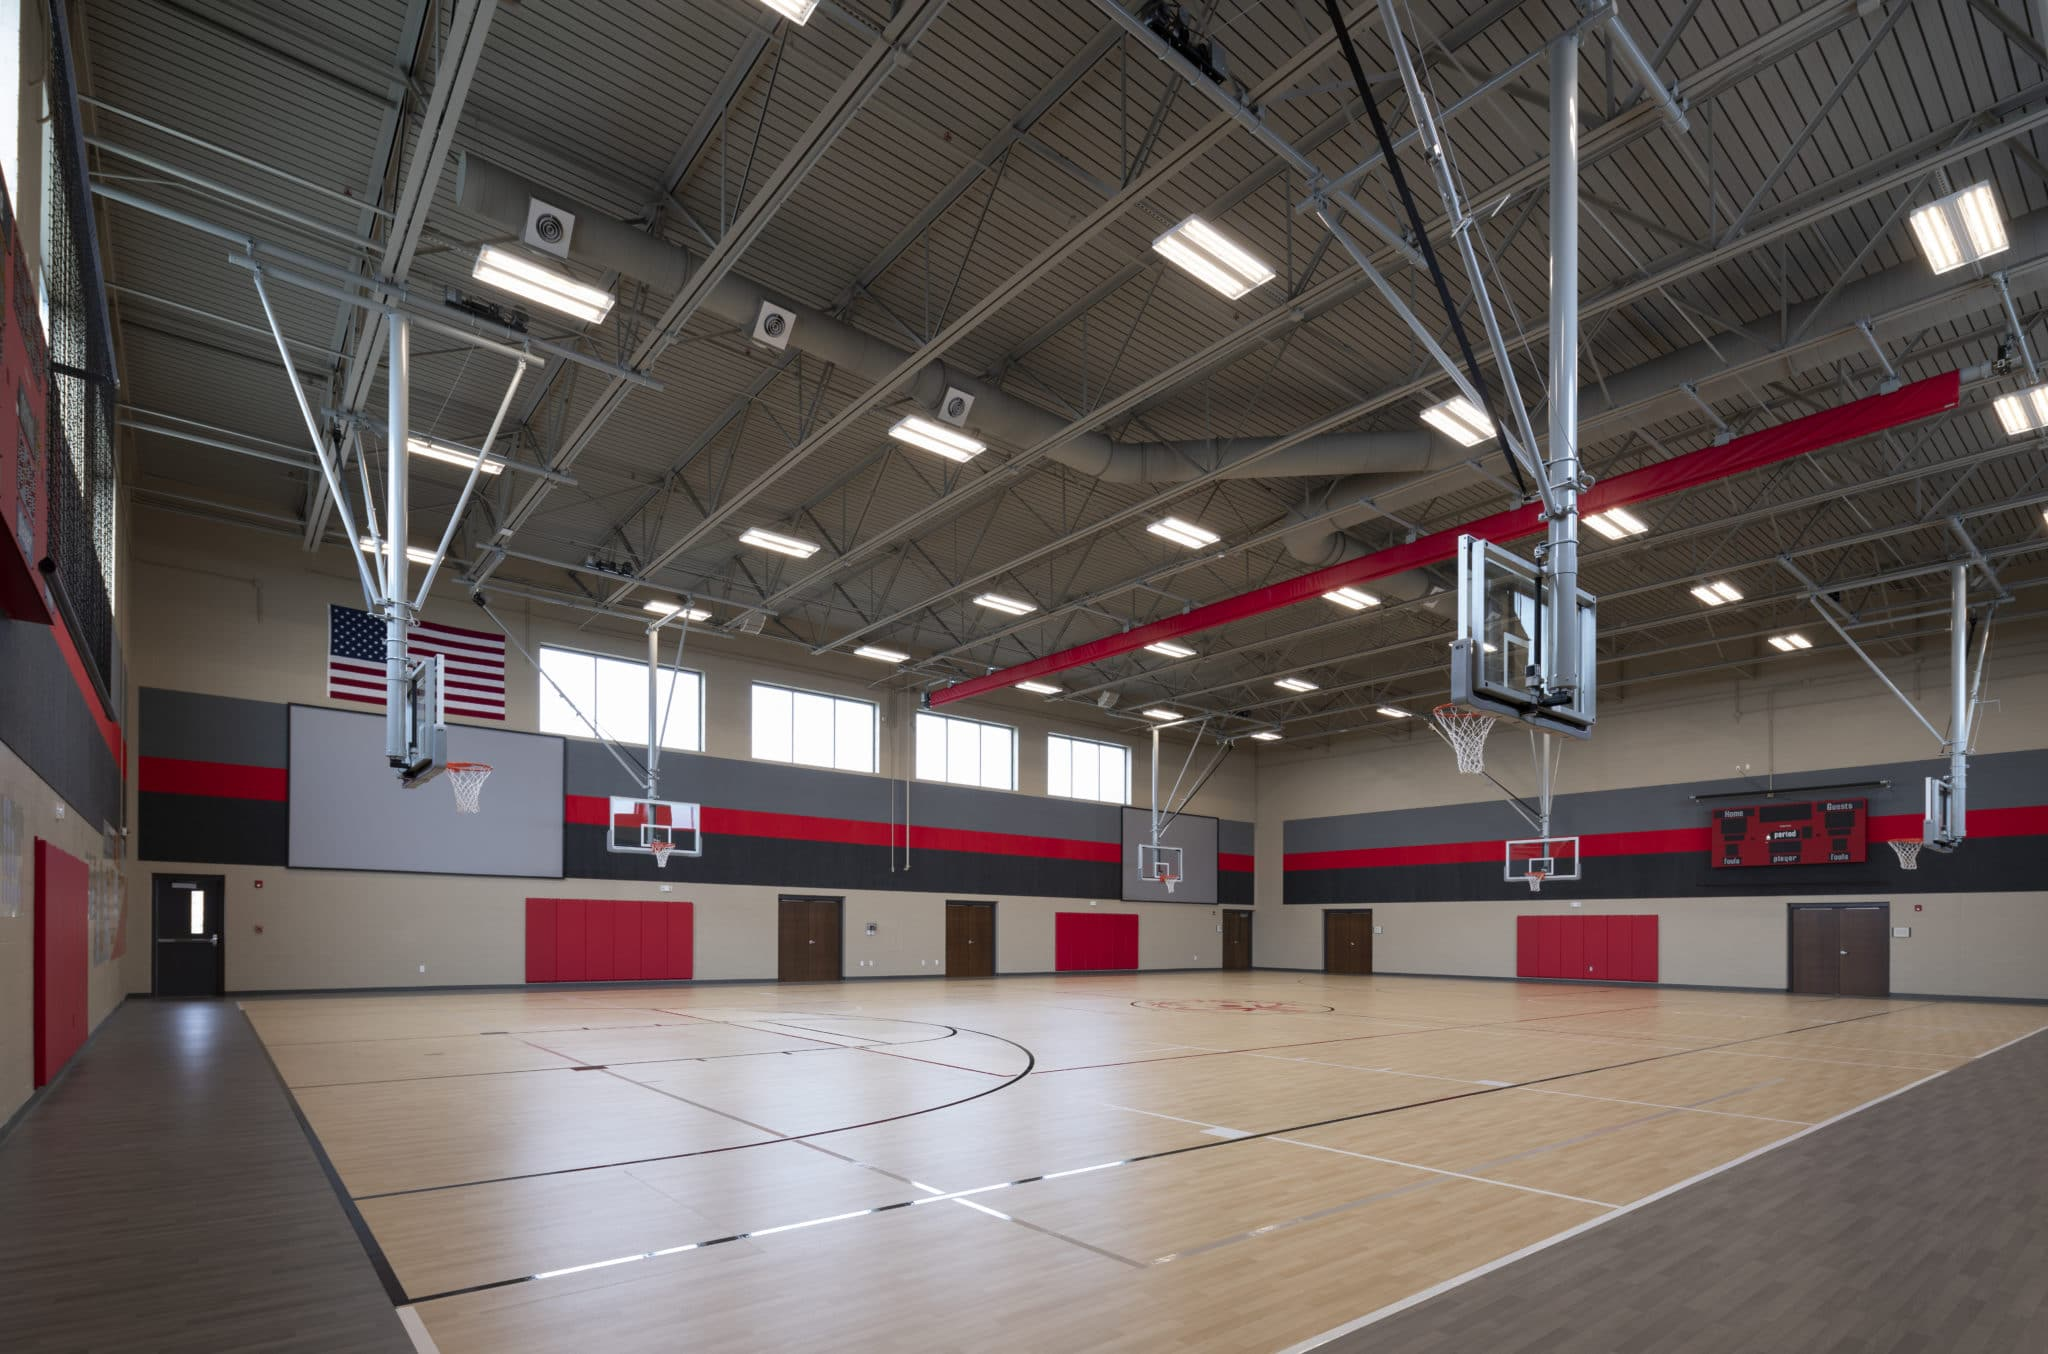 An interior photo of the gymnasium with six basketball hoops